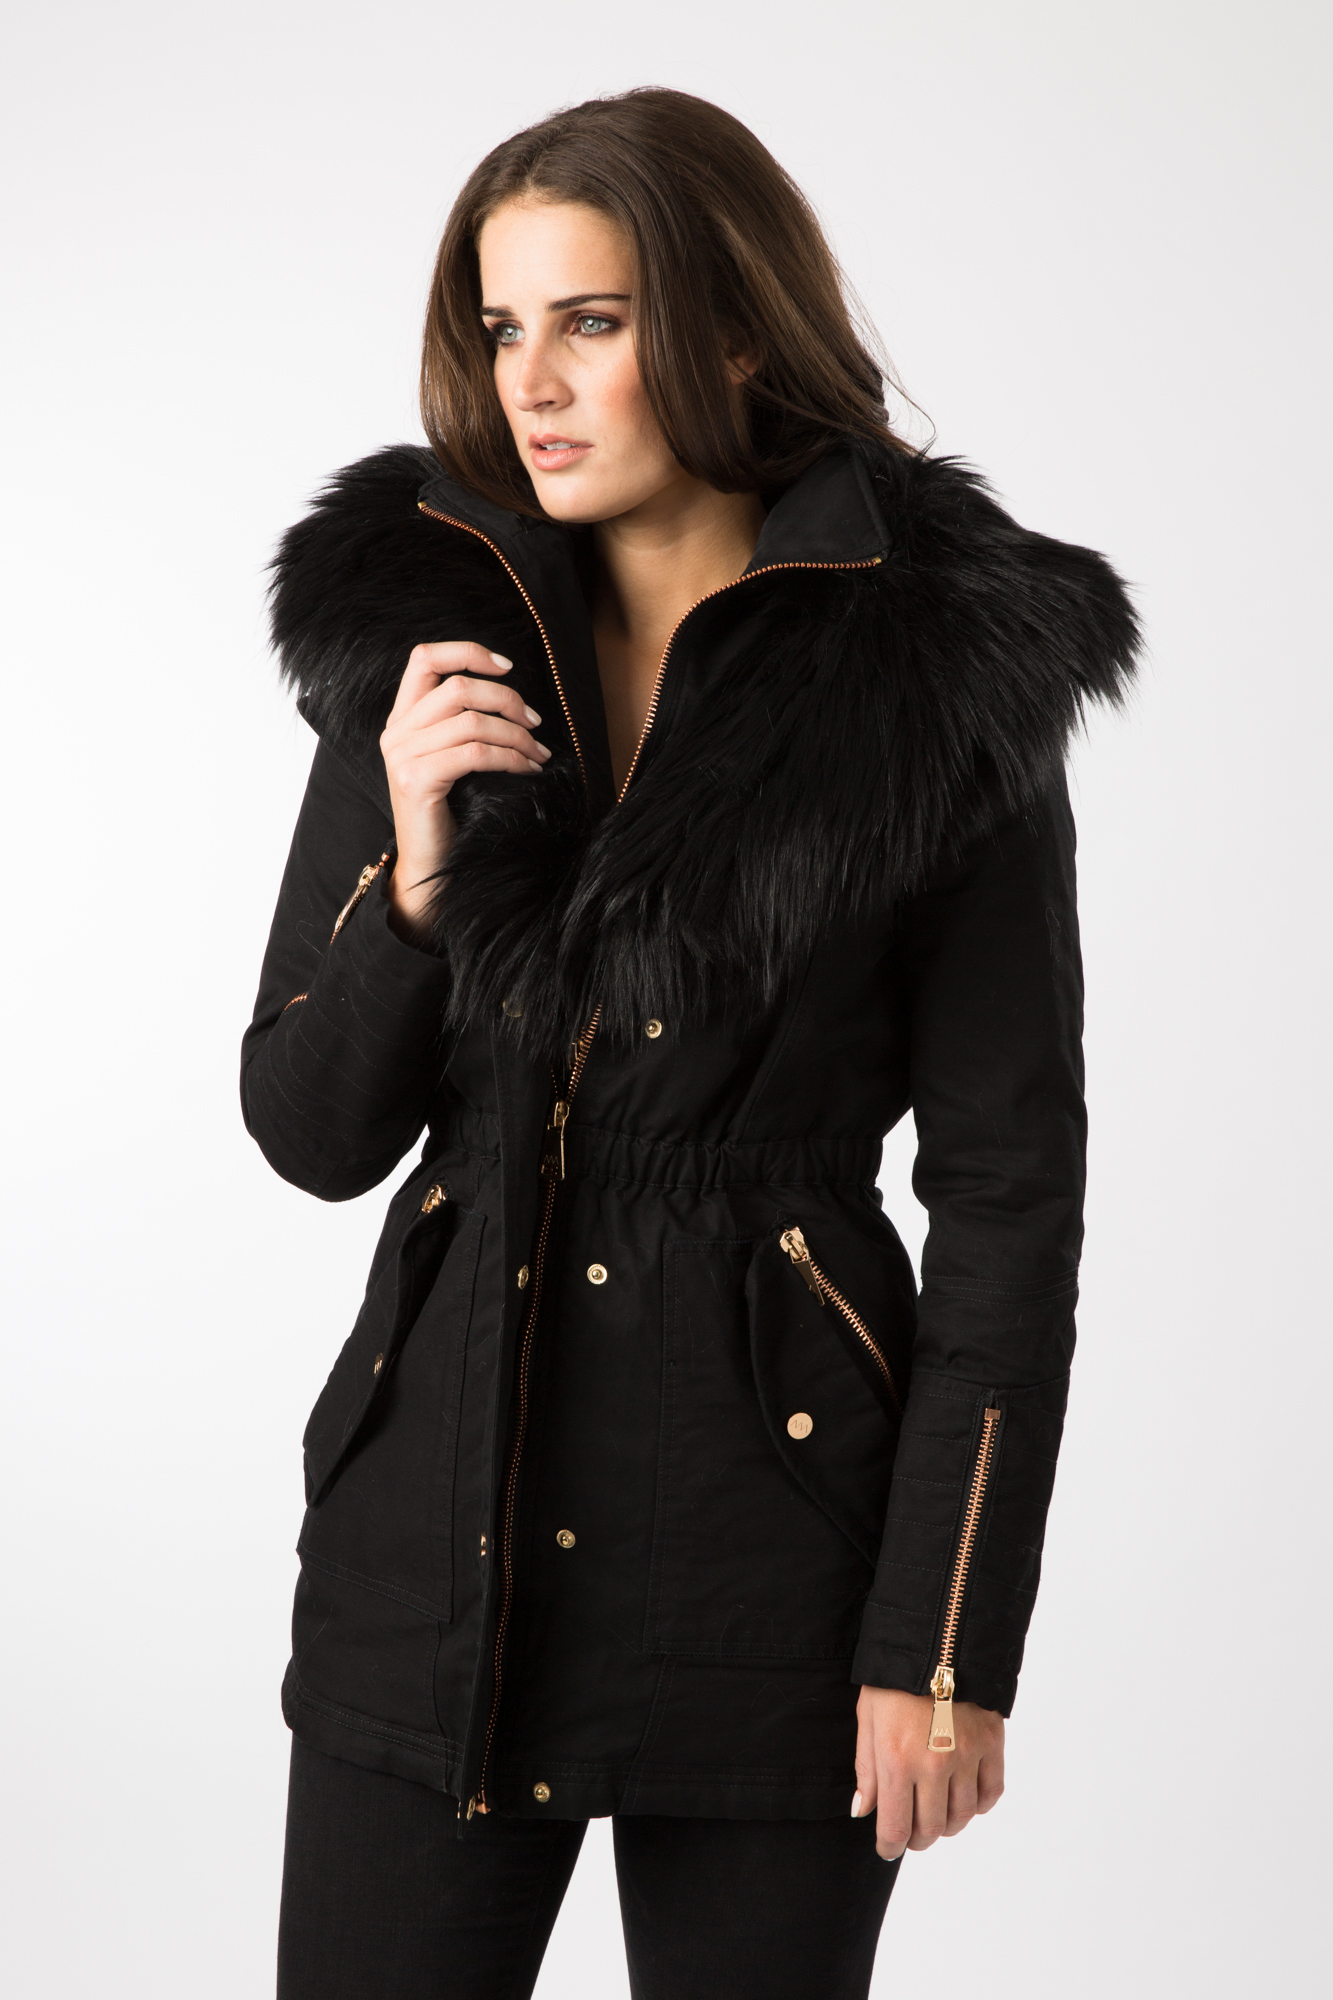 AM London Ladies Black Faux Fur Trim Parka Coat | eBay